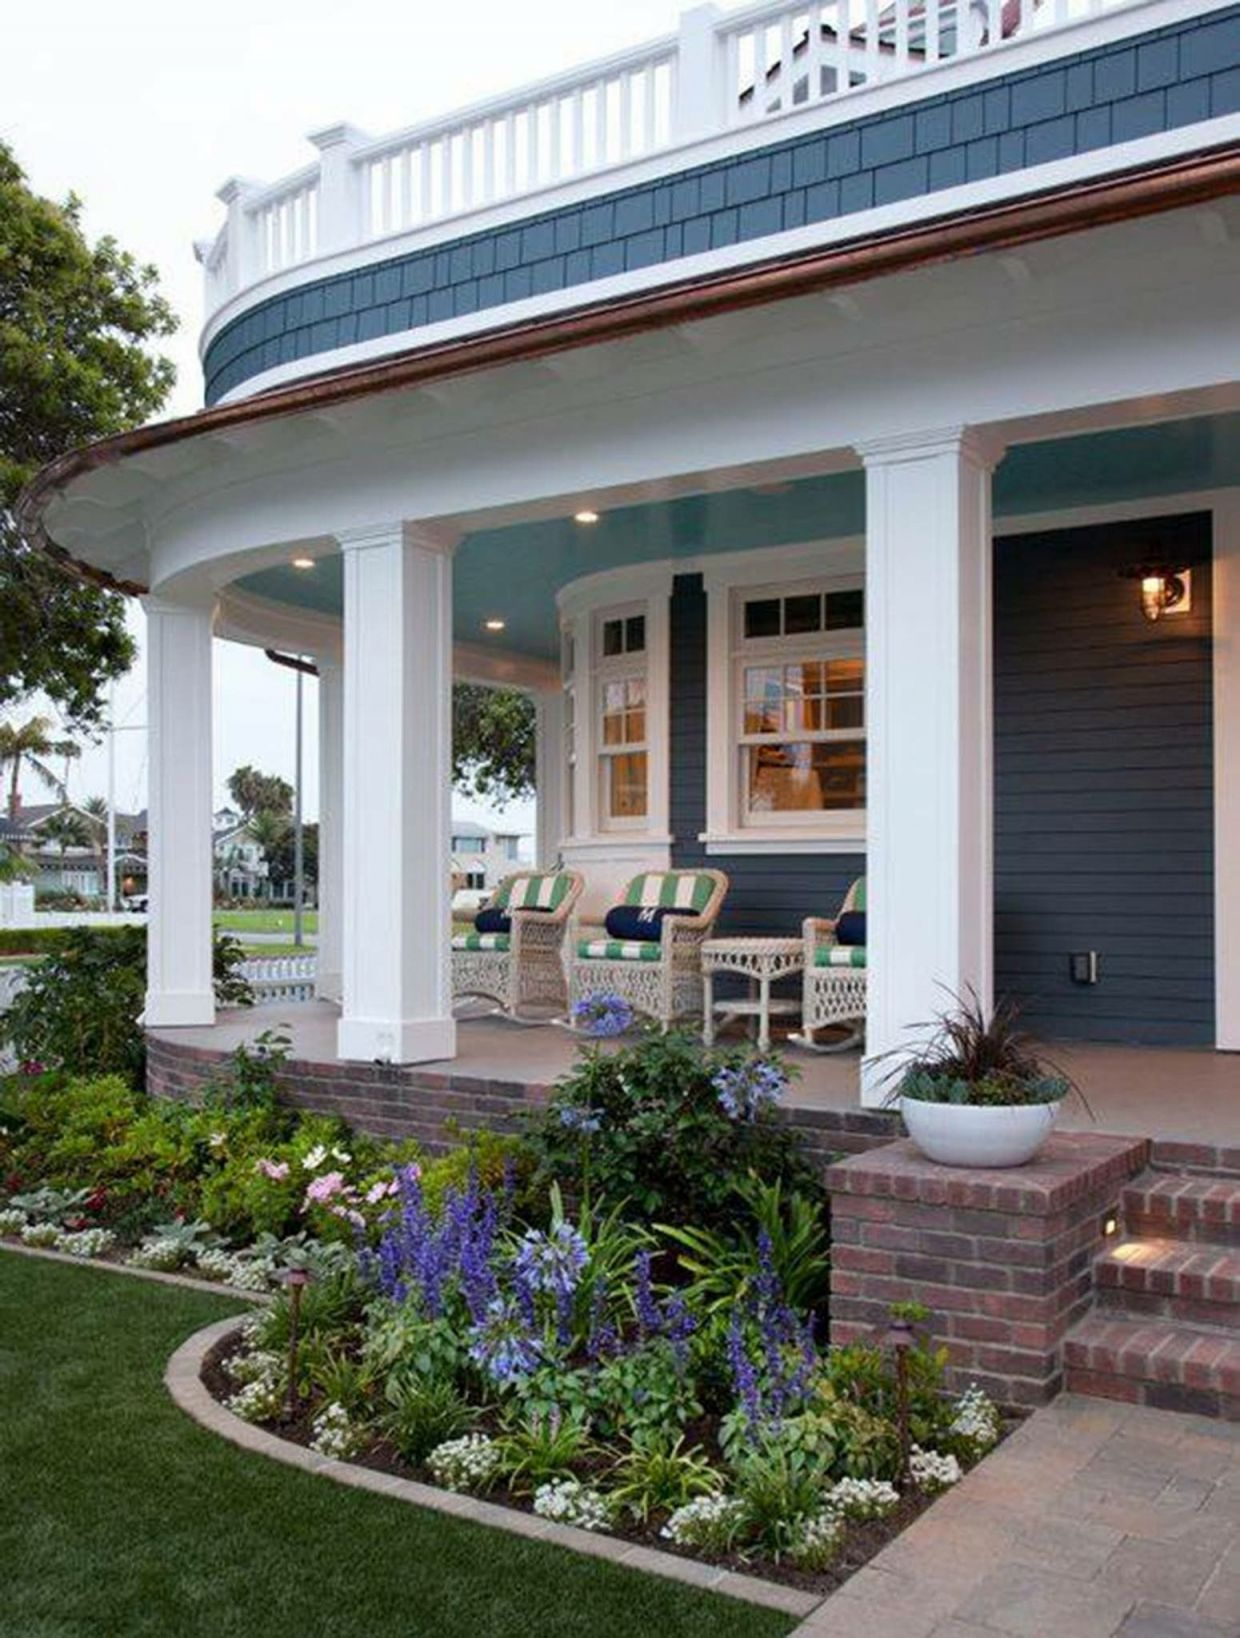 Amazing  landscaping in front of porch